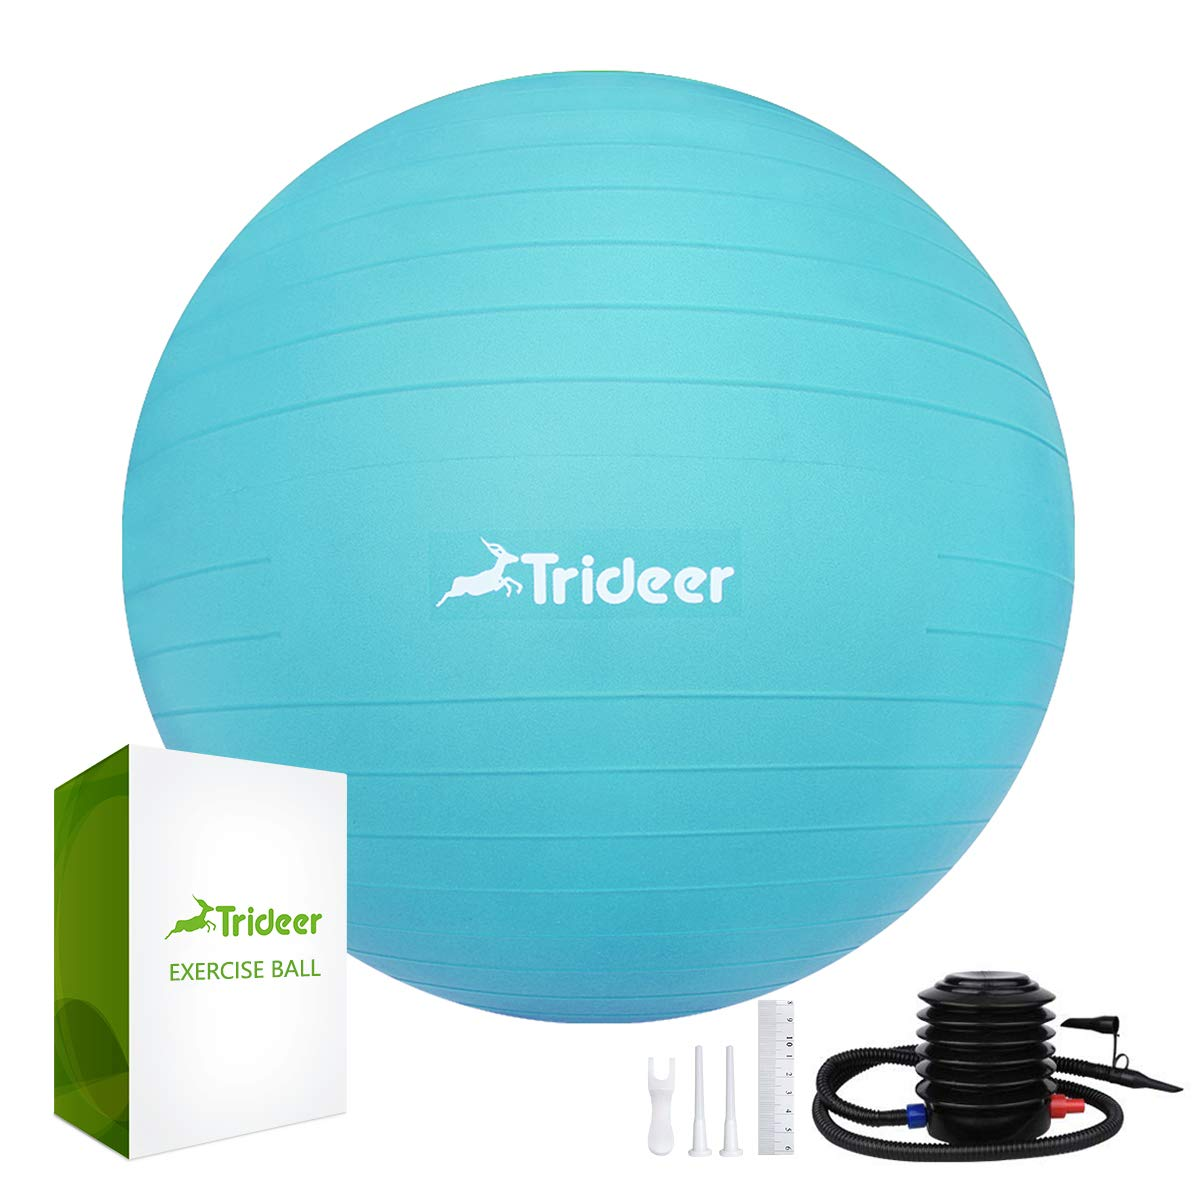 Trideer Exercise Ball, Yoga Ball, Birthing Ball with Quick Pump, Anti-Burst & Extra Thick, Heavy Duty Ball Chair, Stability Ball Supports 2200lbs (Office&Home) (Turkis, XXL (78-85cm))